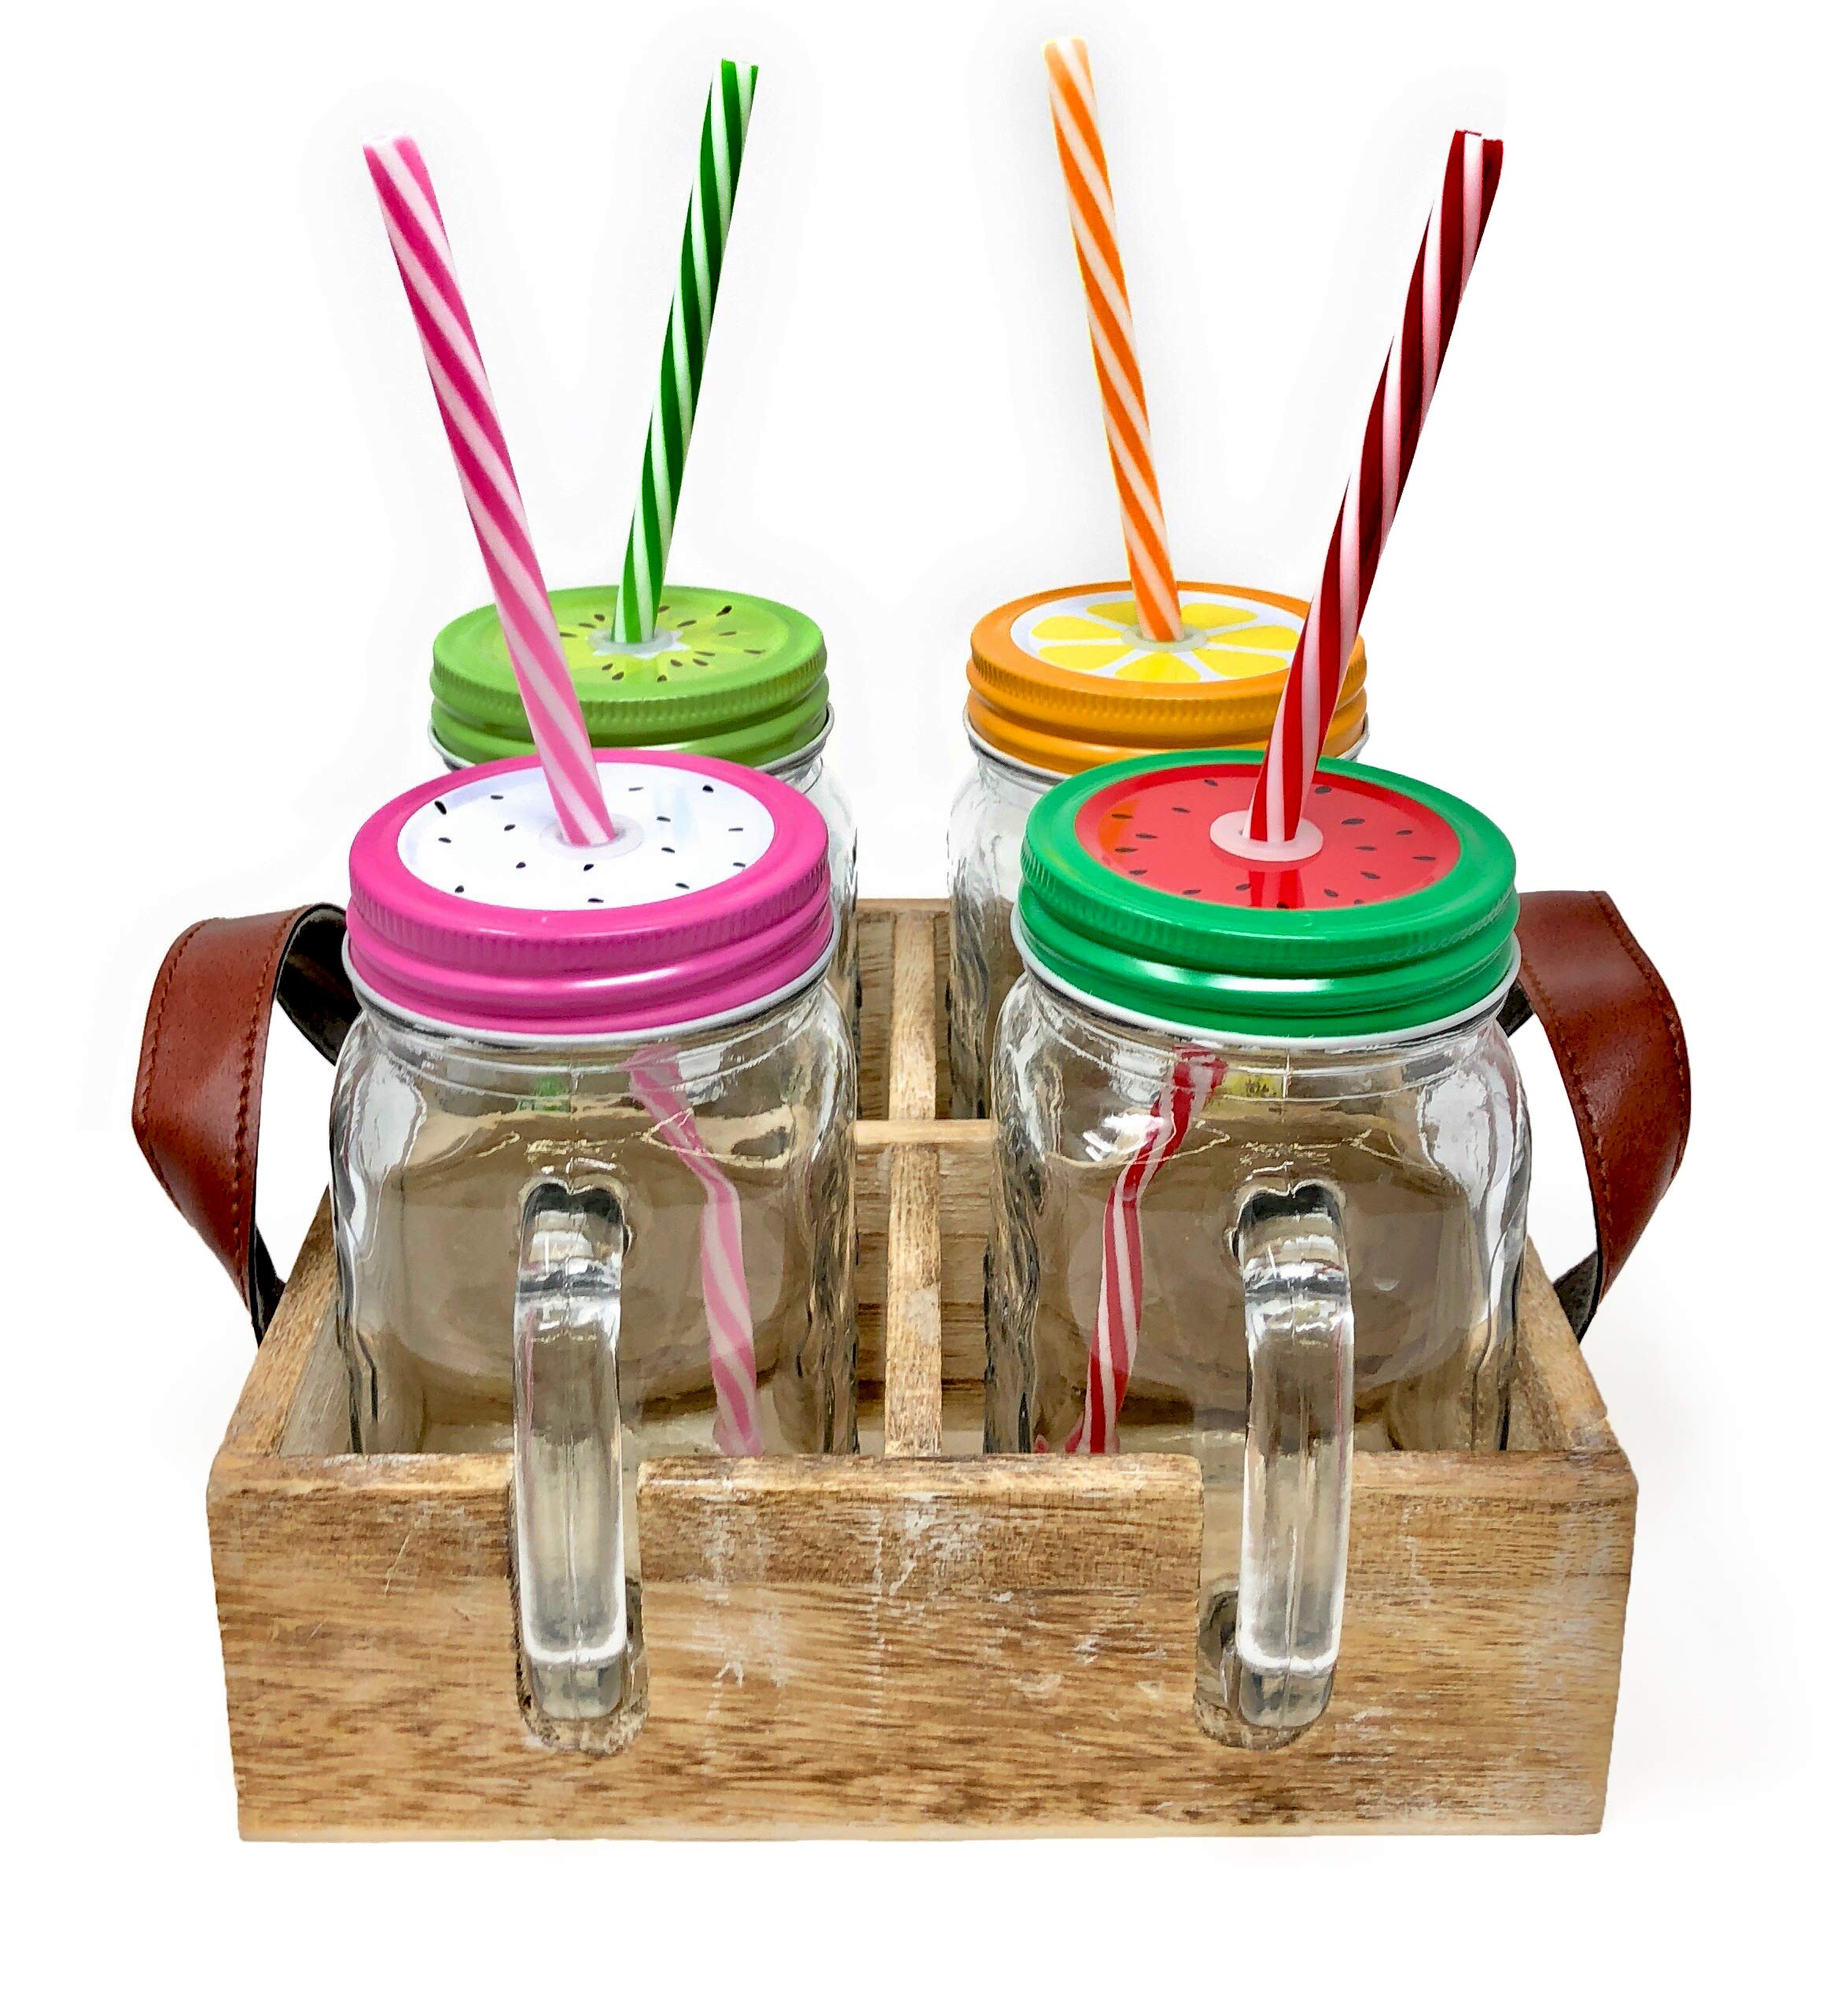 TheBarsentials Set of 4 Mason Jar Mugs with Handles, Stainless Steel Lids and Reusable Straws, 16 oz Clear Glass Pint, Farmhouse Drinking Cups in Rustic Wood Tray (Assorted Colors) by TheBarsentials